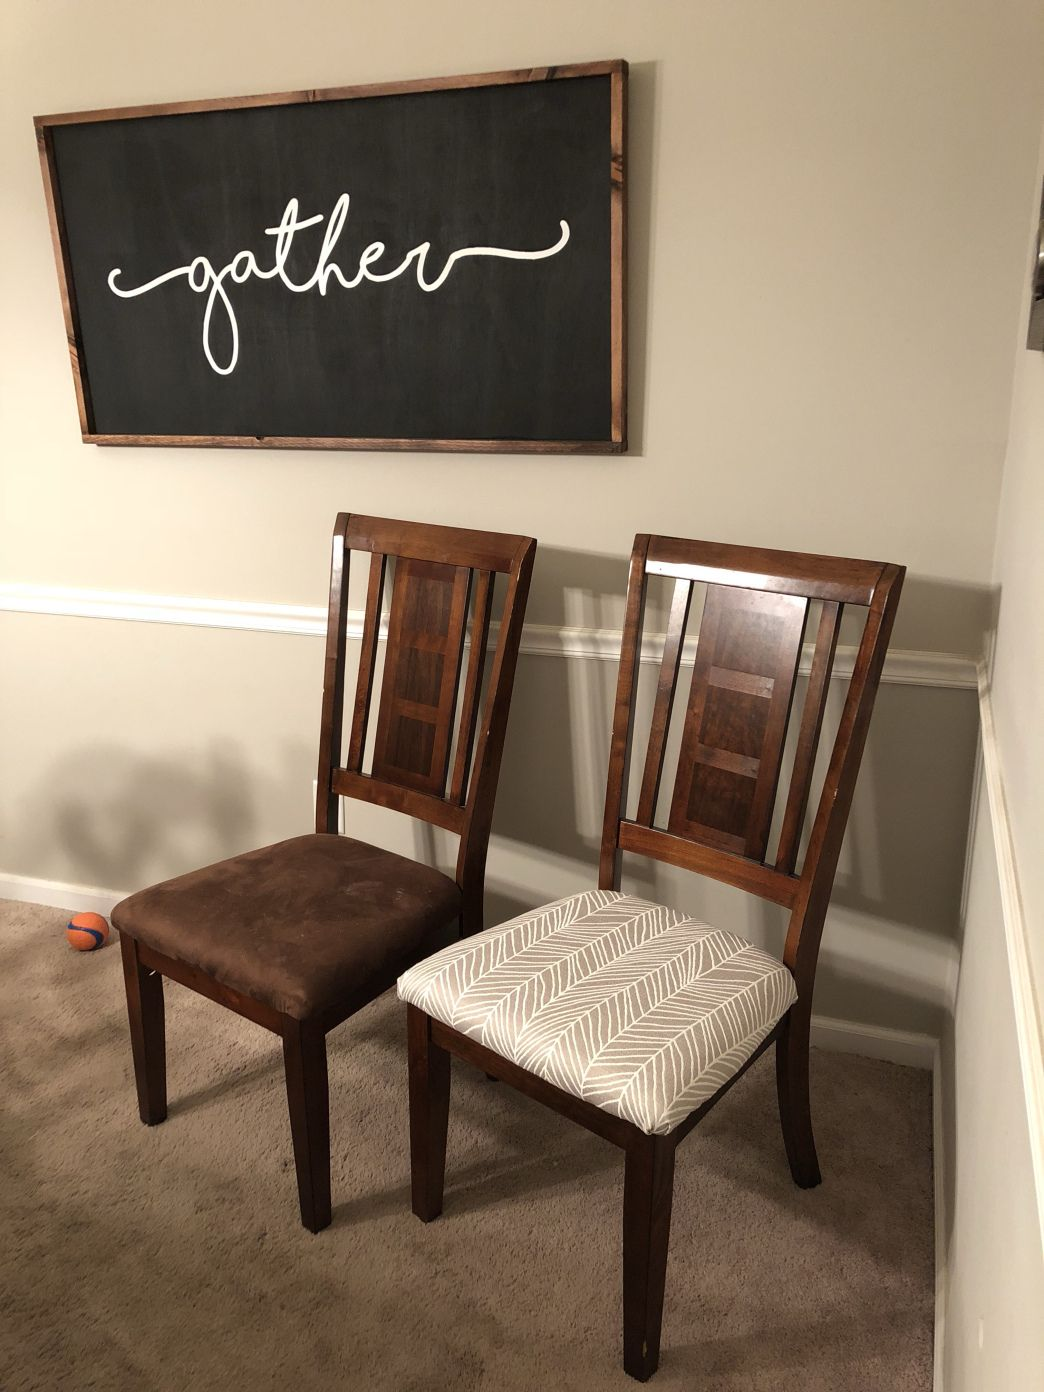 How to reupholster chairs reupholster furniture kitchen